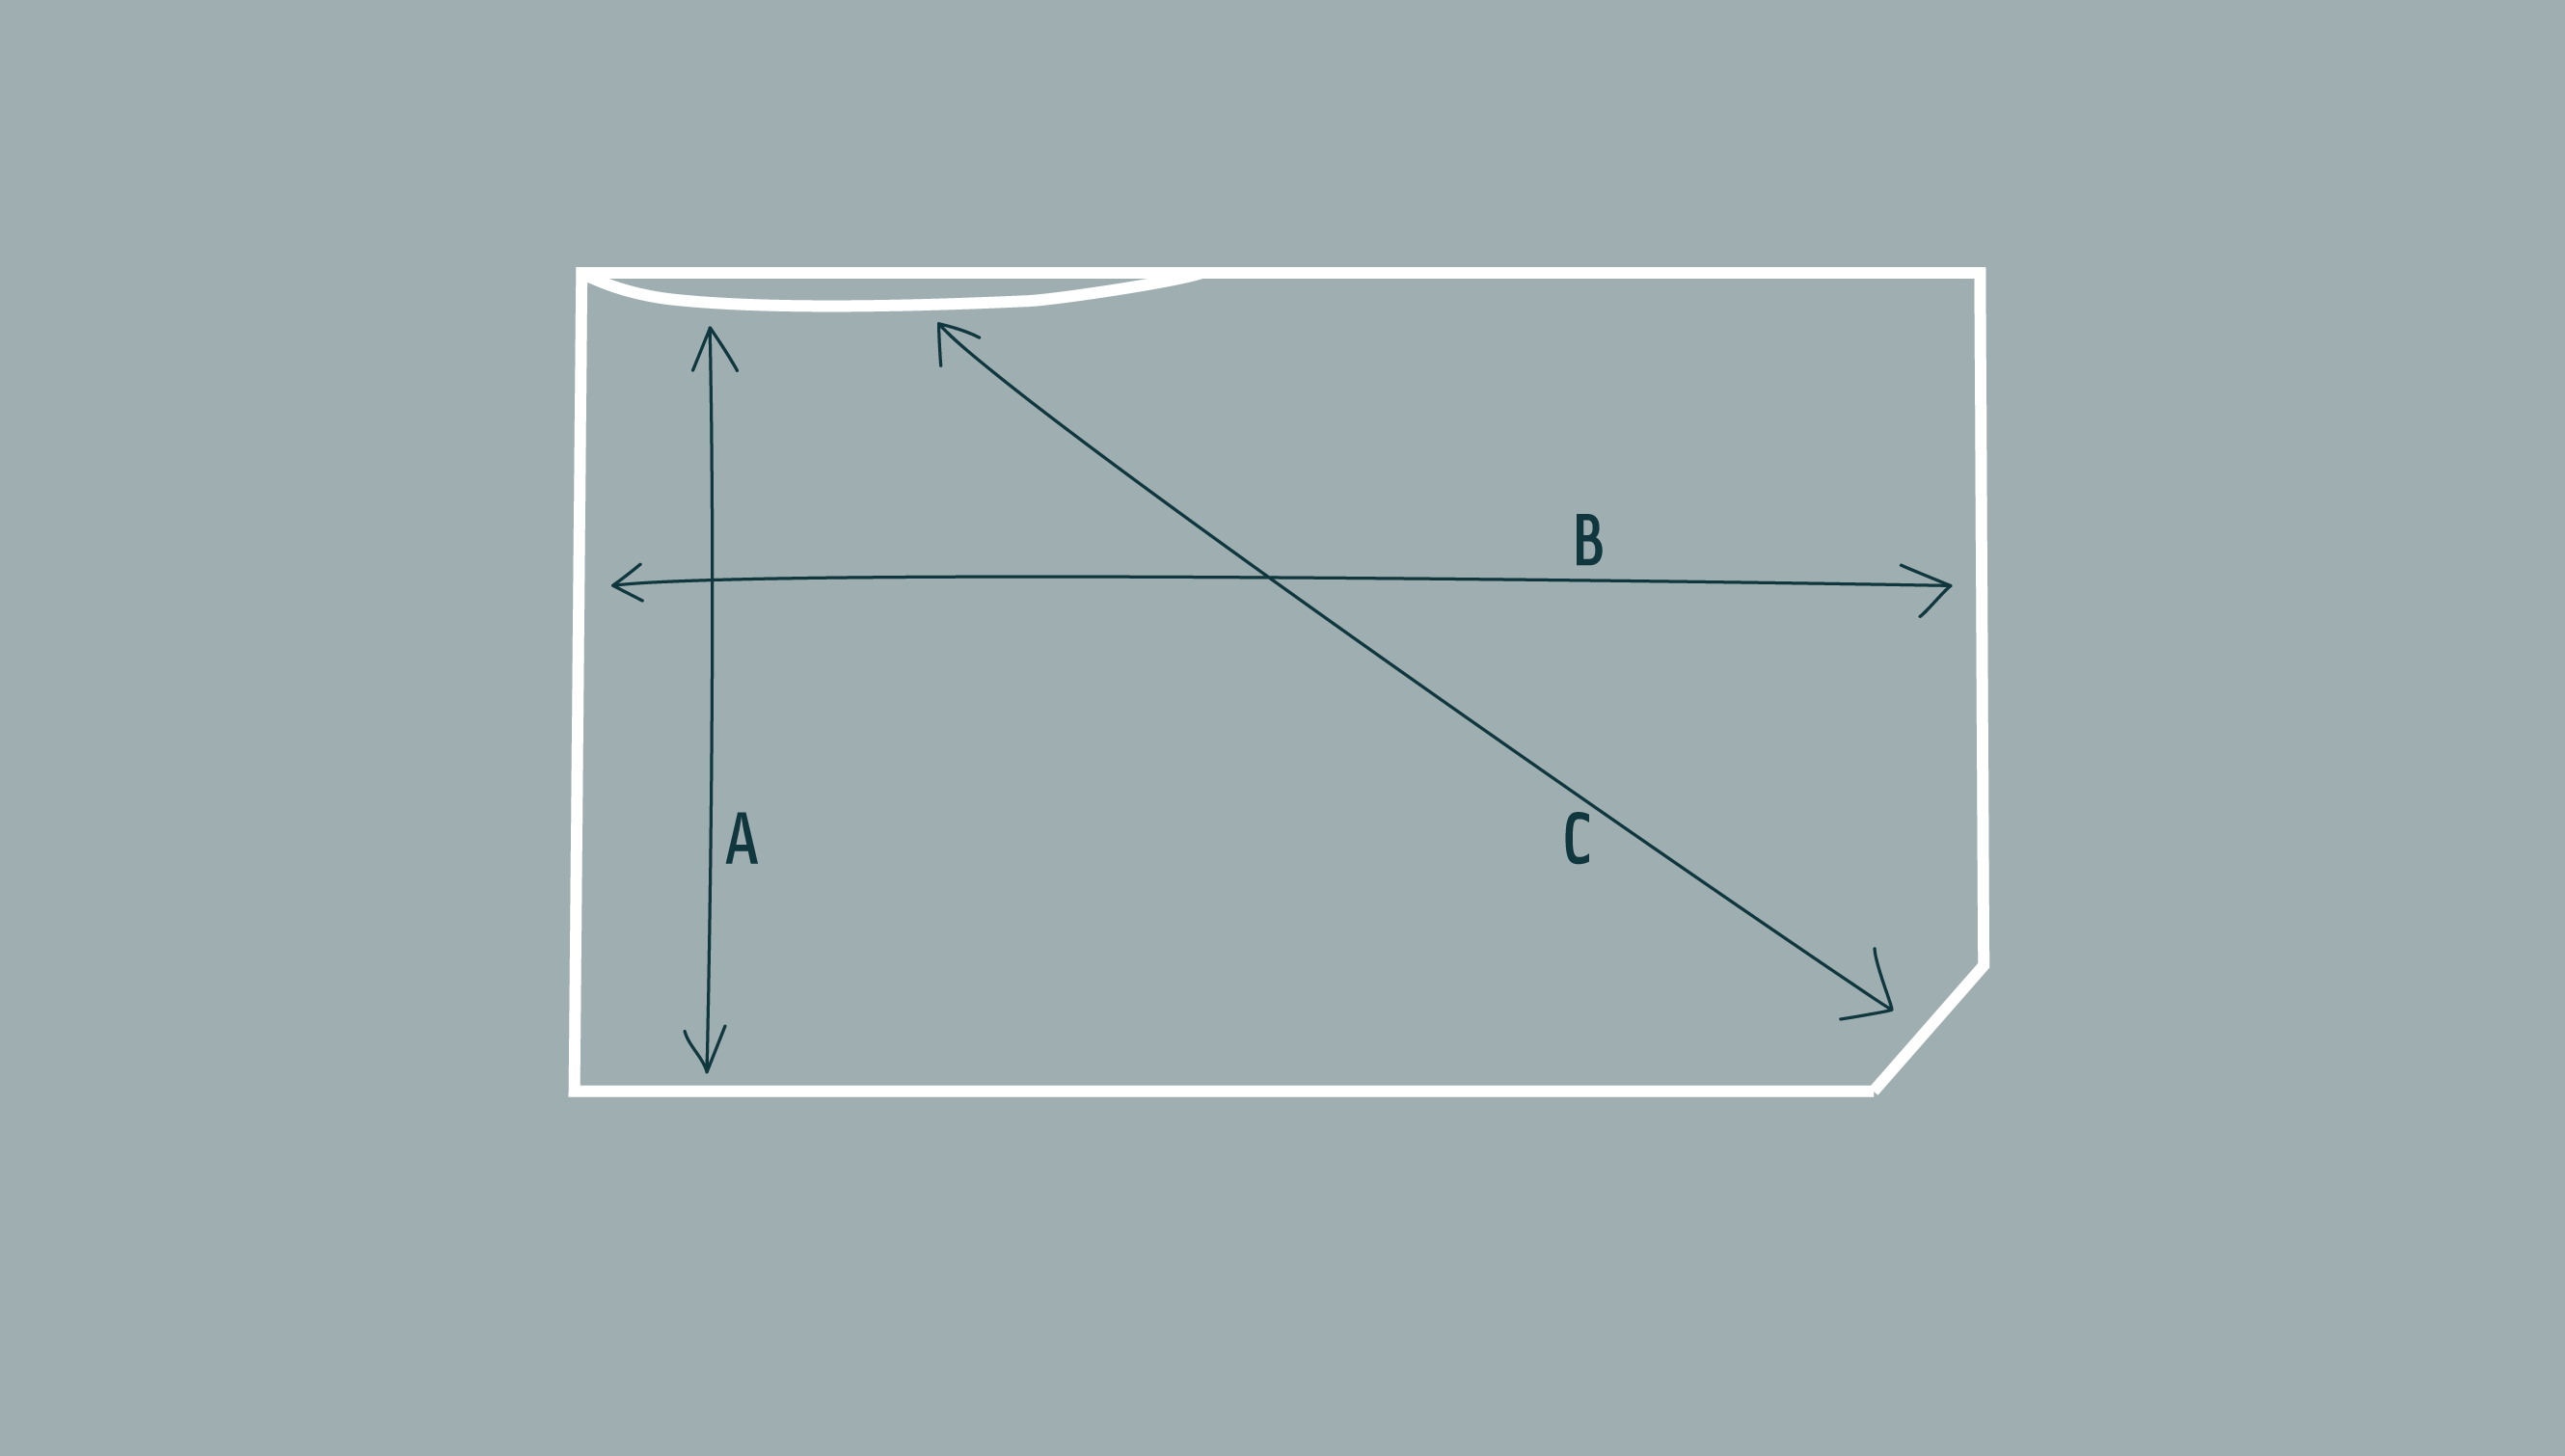 Diagram of knitted poncho showing dimensions at longest and shortest points